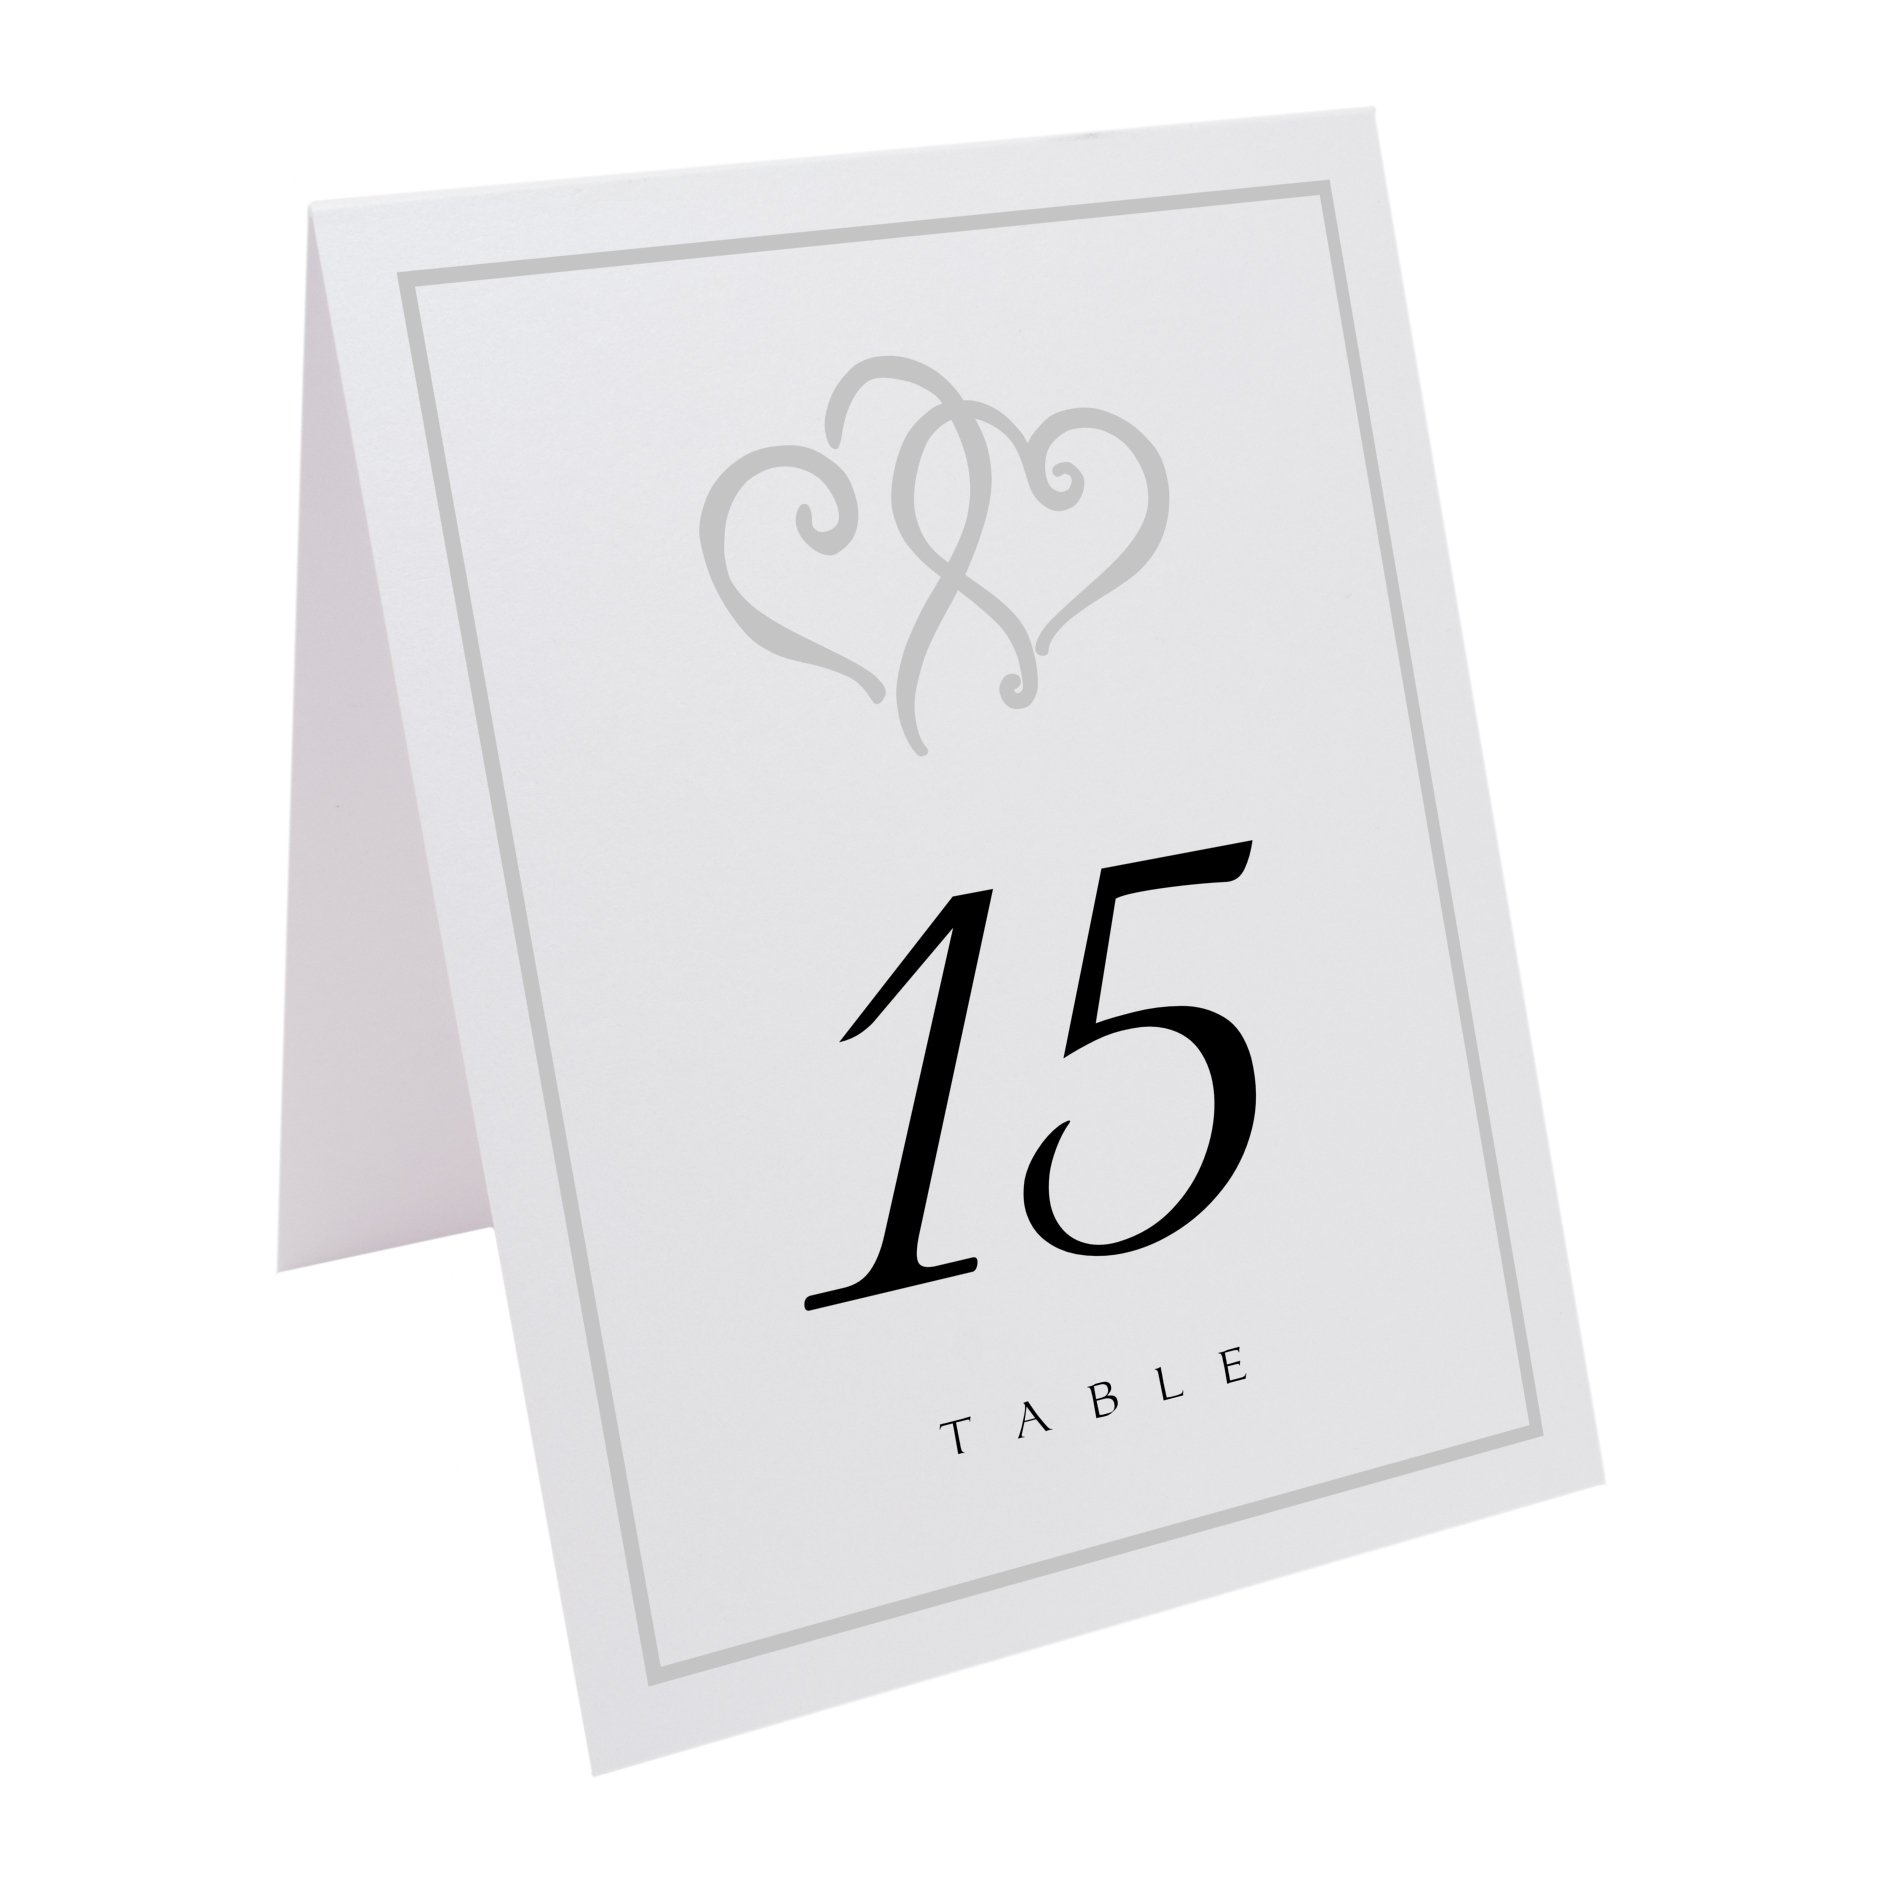 Documents and Designs Linked Hearts and Border Table Numbers (Select Color/Quantity), White, Silver, 1-20